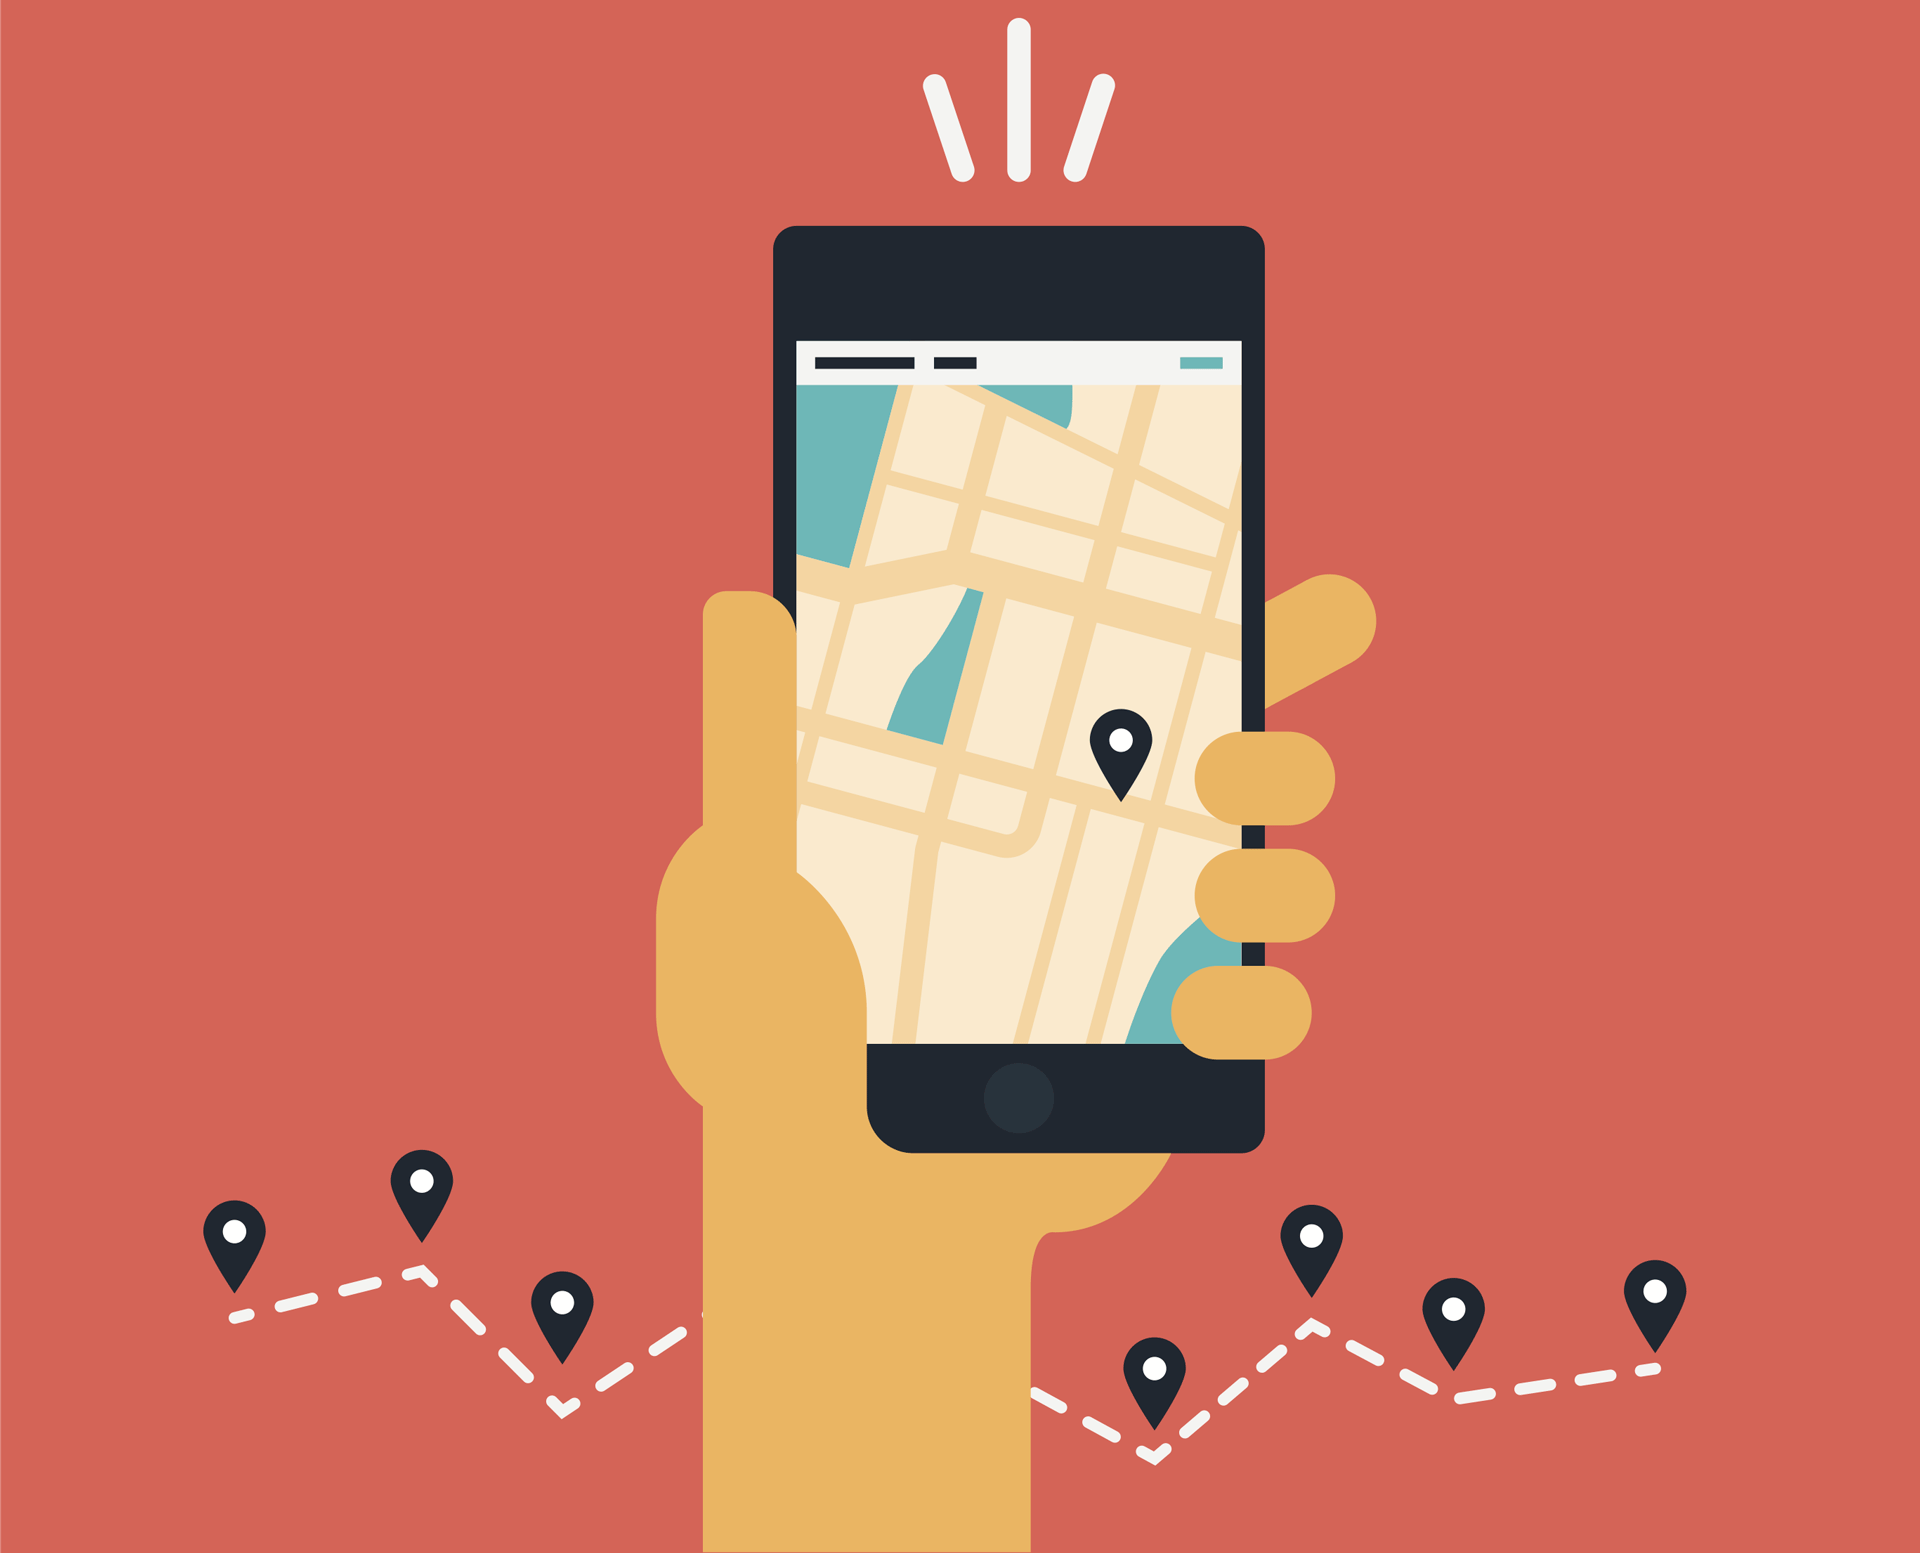 5 Apps to Track Child Location, Photos, Calls, Messages, Videos, etc.